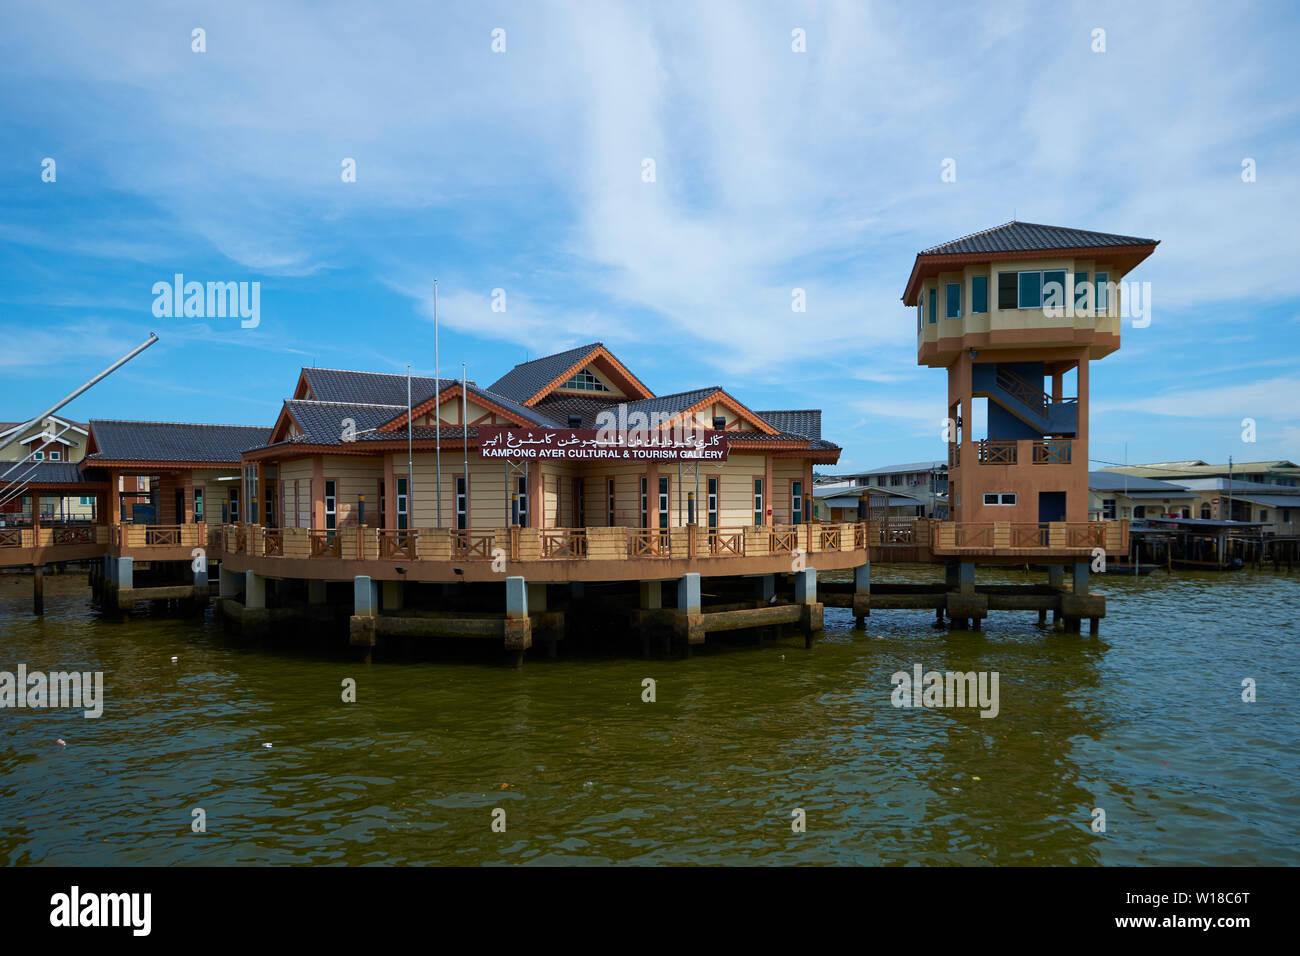 The main tourism and cultural center in the water stilt village Kampong Ayer in Bandar Seri Begawan,Brunei. - Stock Image